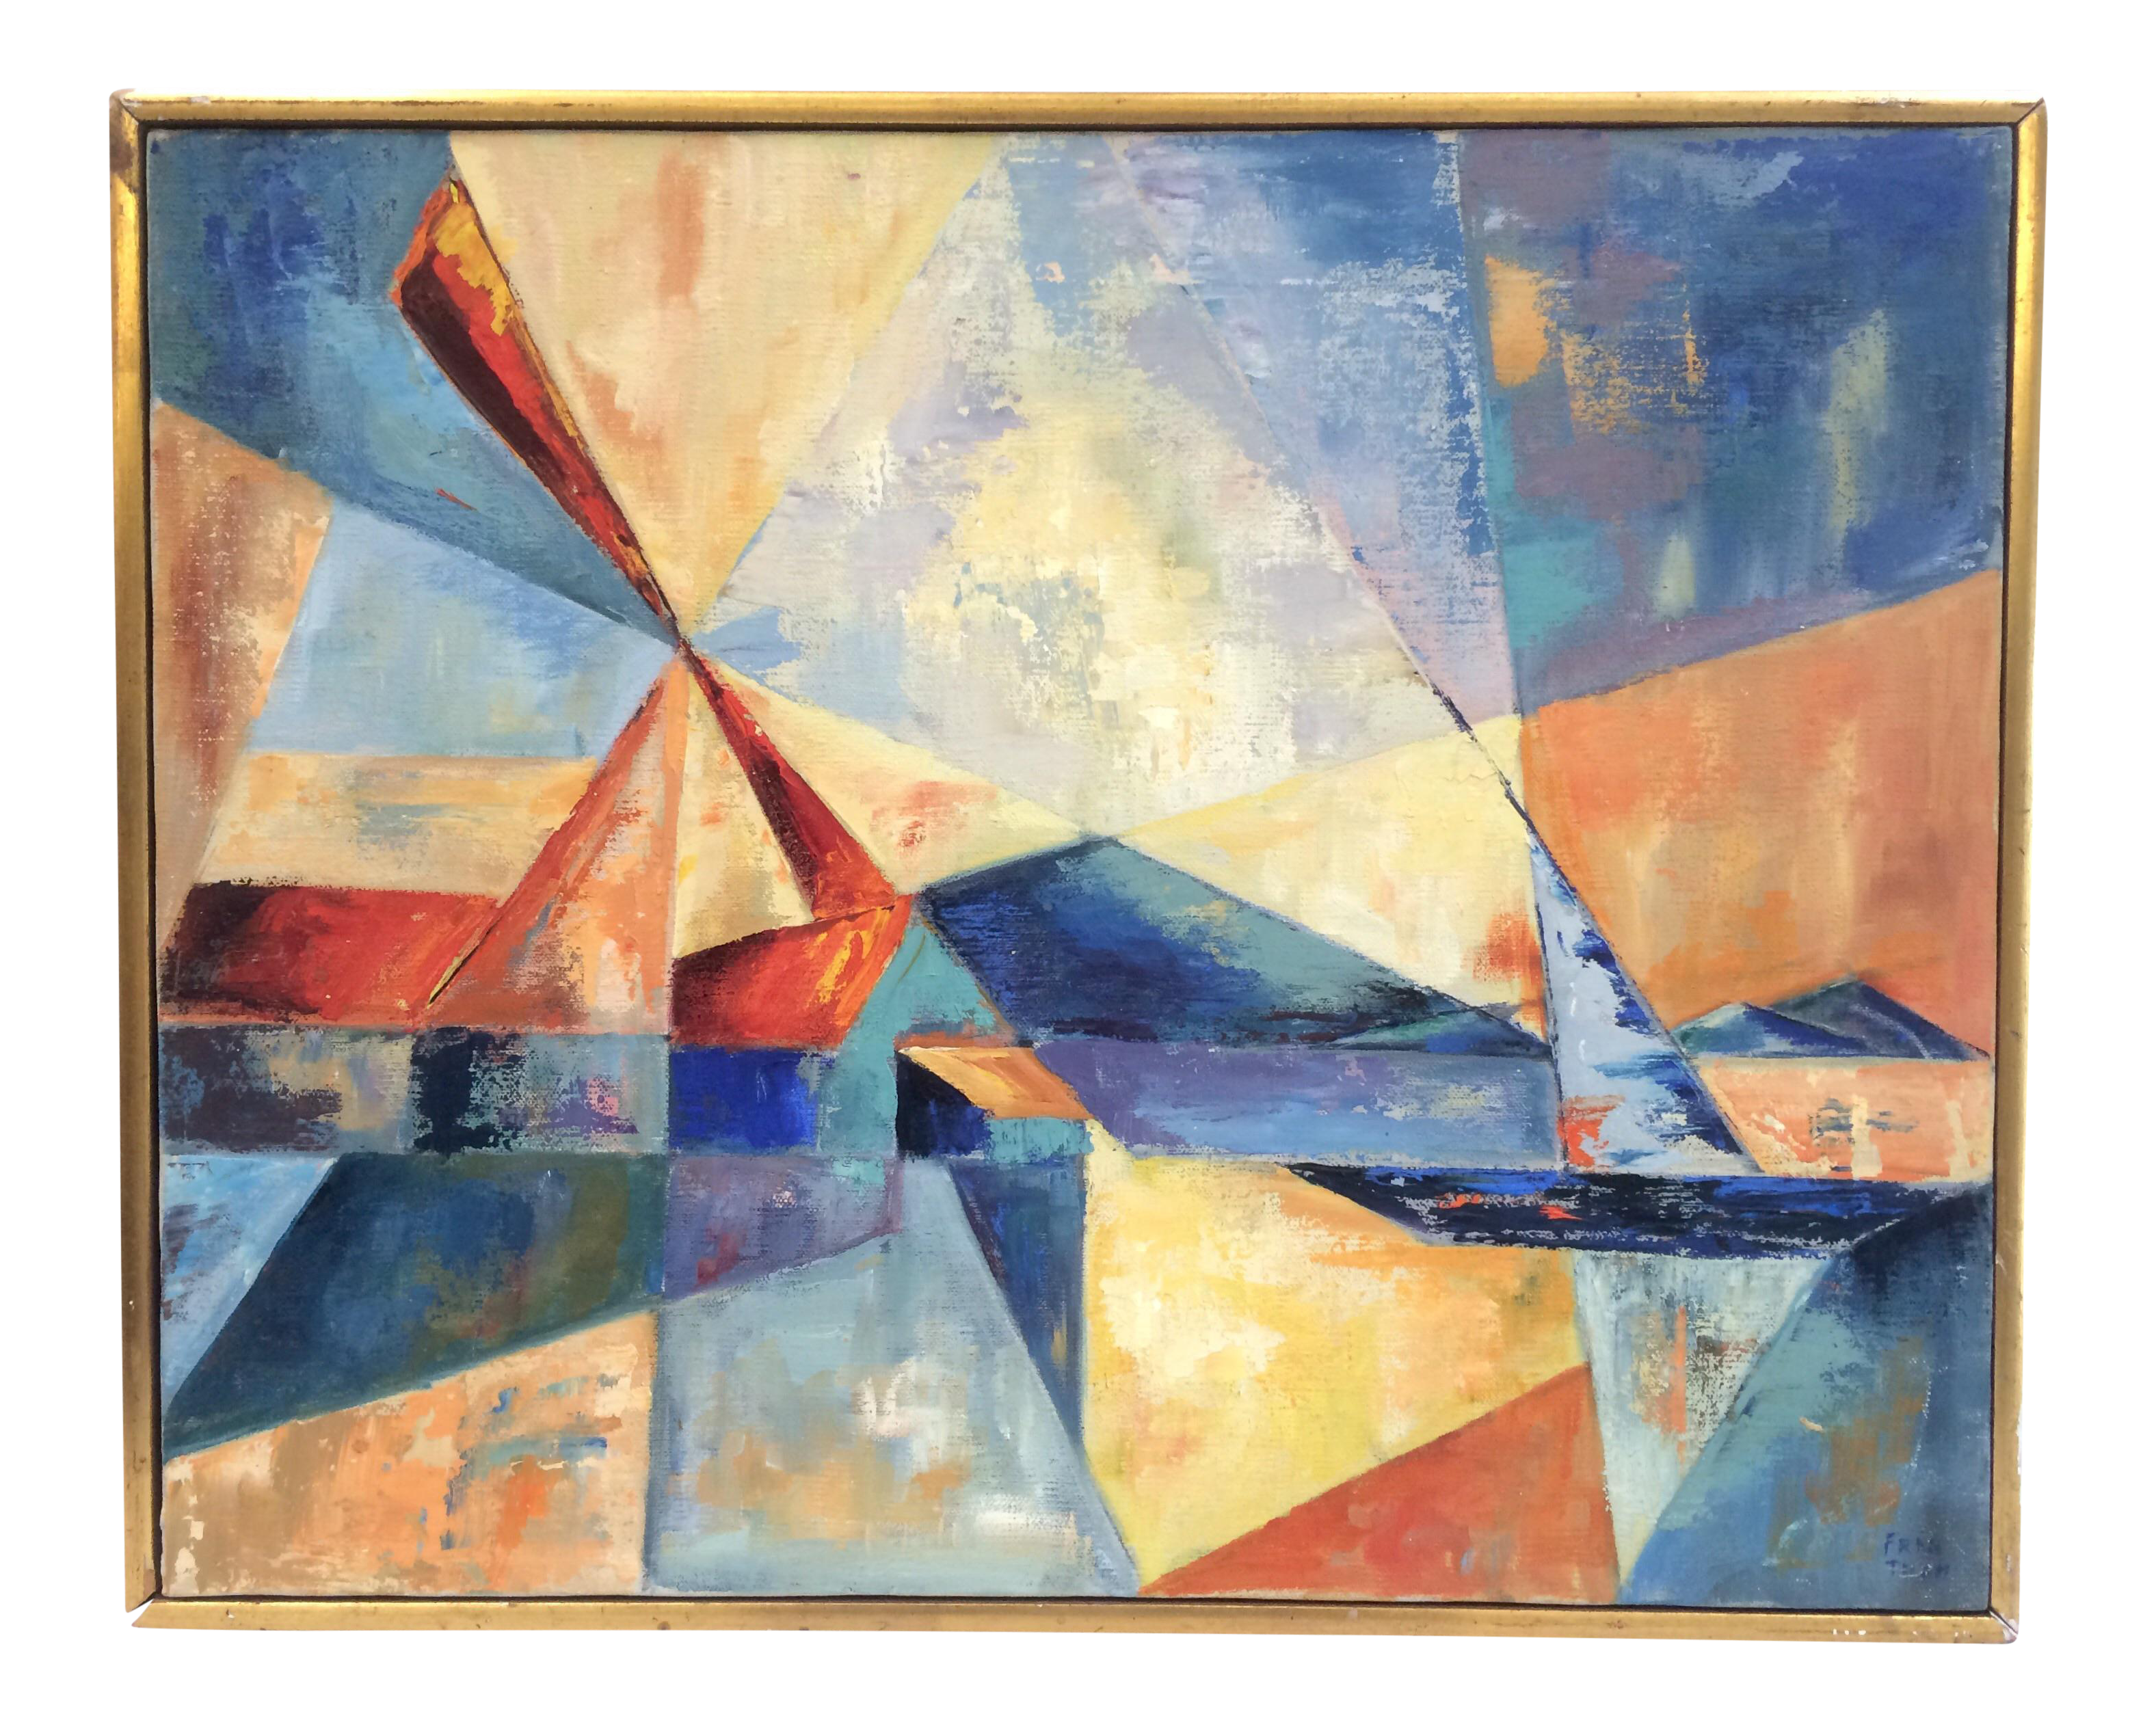 Vintage Brightly Colored Geometric Abstract Painting On Chairish Com Painting Abstract Painting Artwork